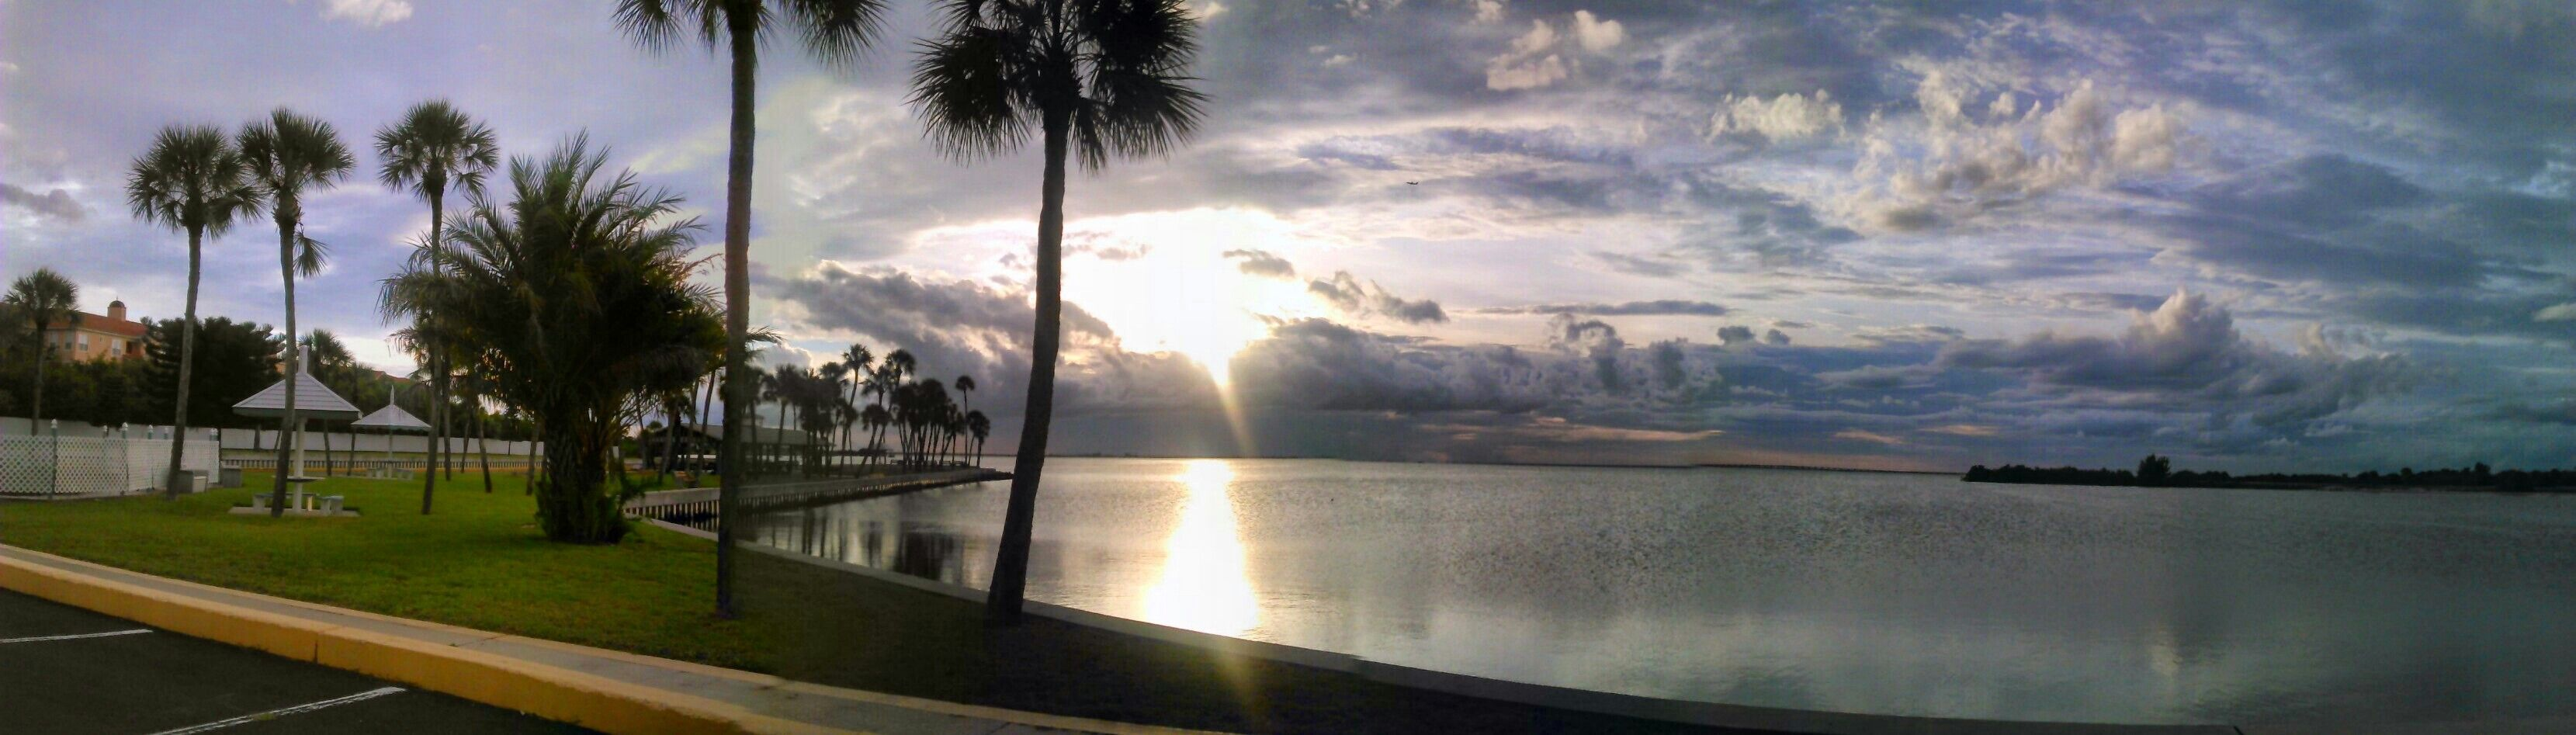 Panoramic of Regency Cove, where i used to live. Photo by Norine Mungo